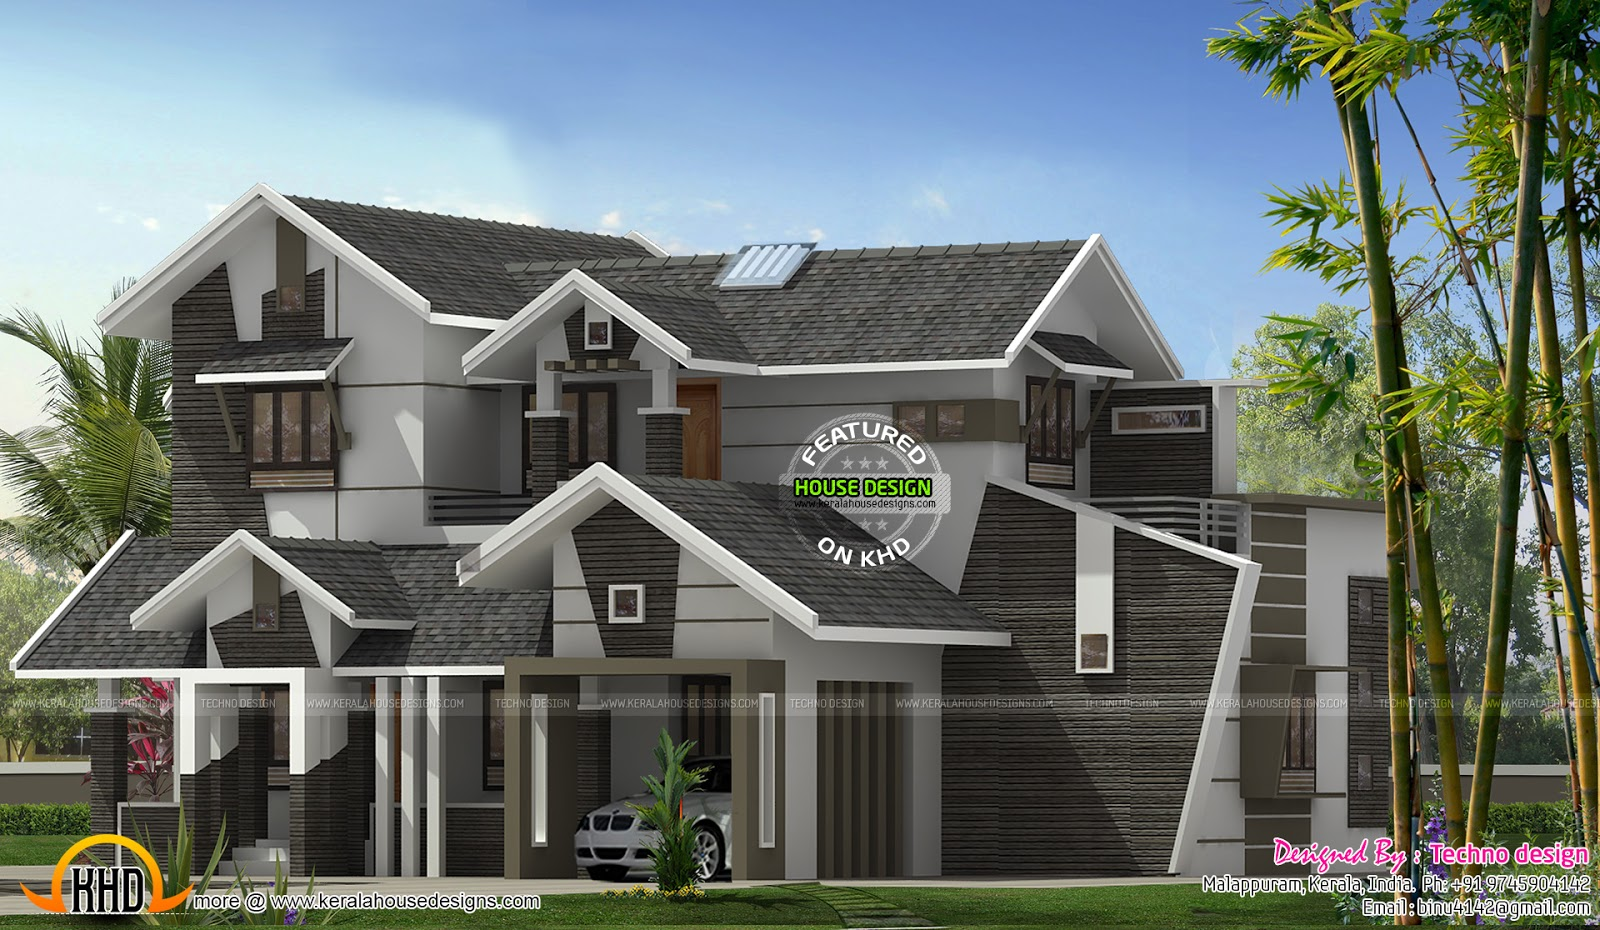 Unique 5 bhk contemporary house kerala home design and floor plans - Unique house design ...